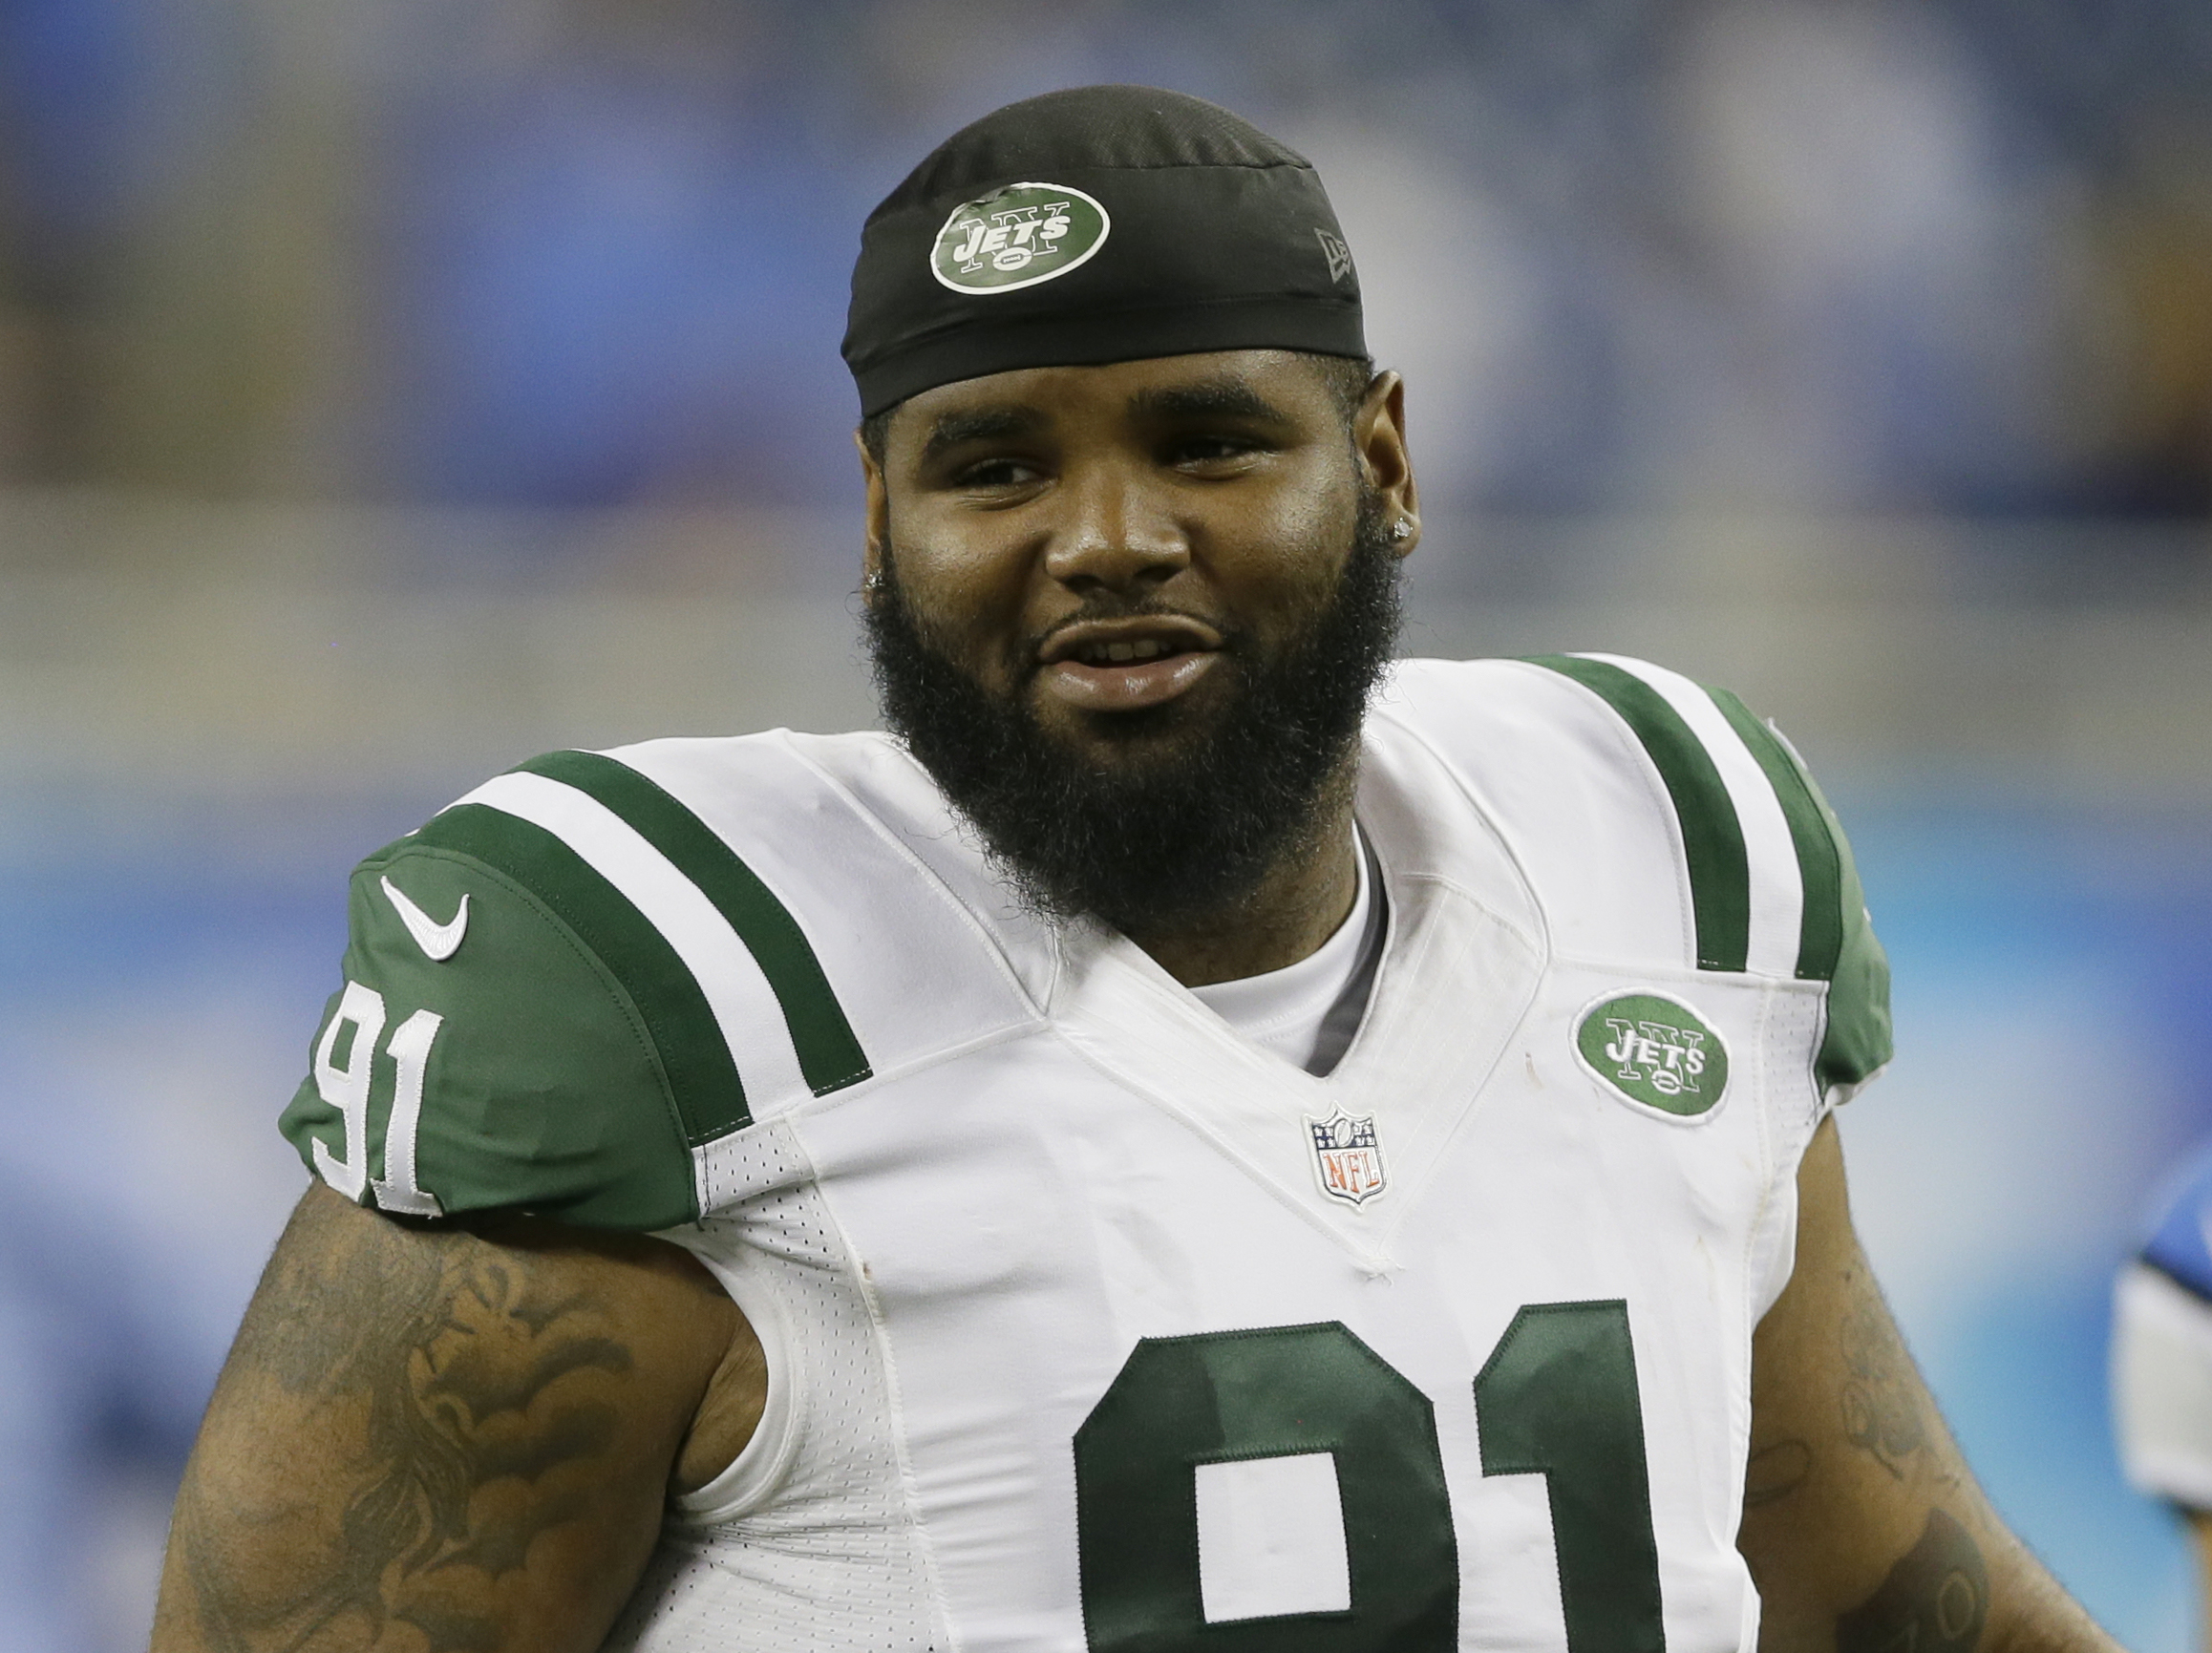 FILE - In this Aug. 13, 2015, file photo, New York Jets defensive end Sheldon Richardson (91) walks off the field following an NFL preseason football game against the Detroit Lions in Detroit. A Missouri judge has continued until next month the criminal c